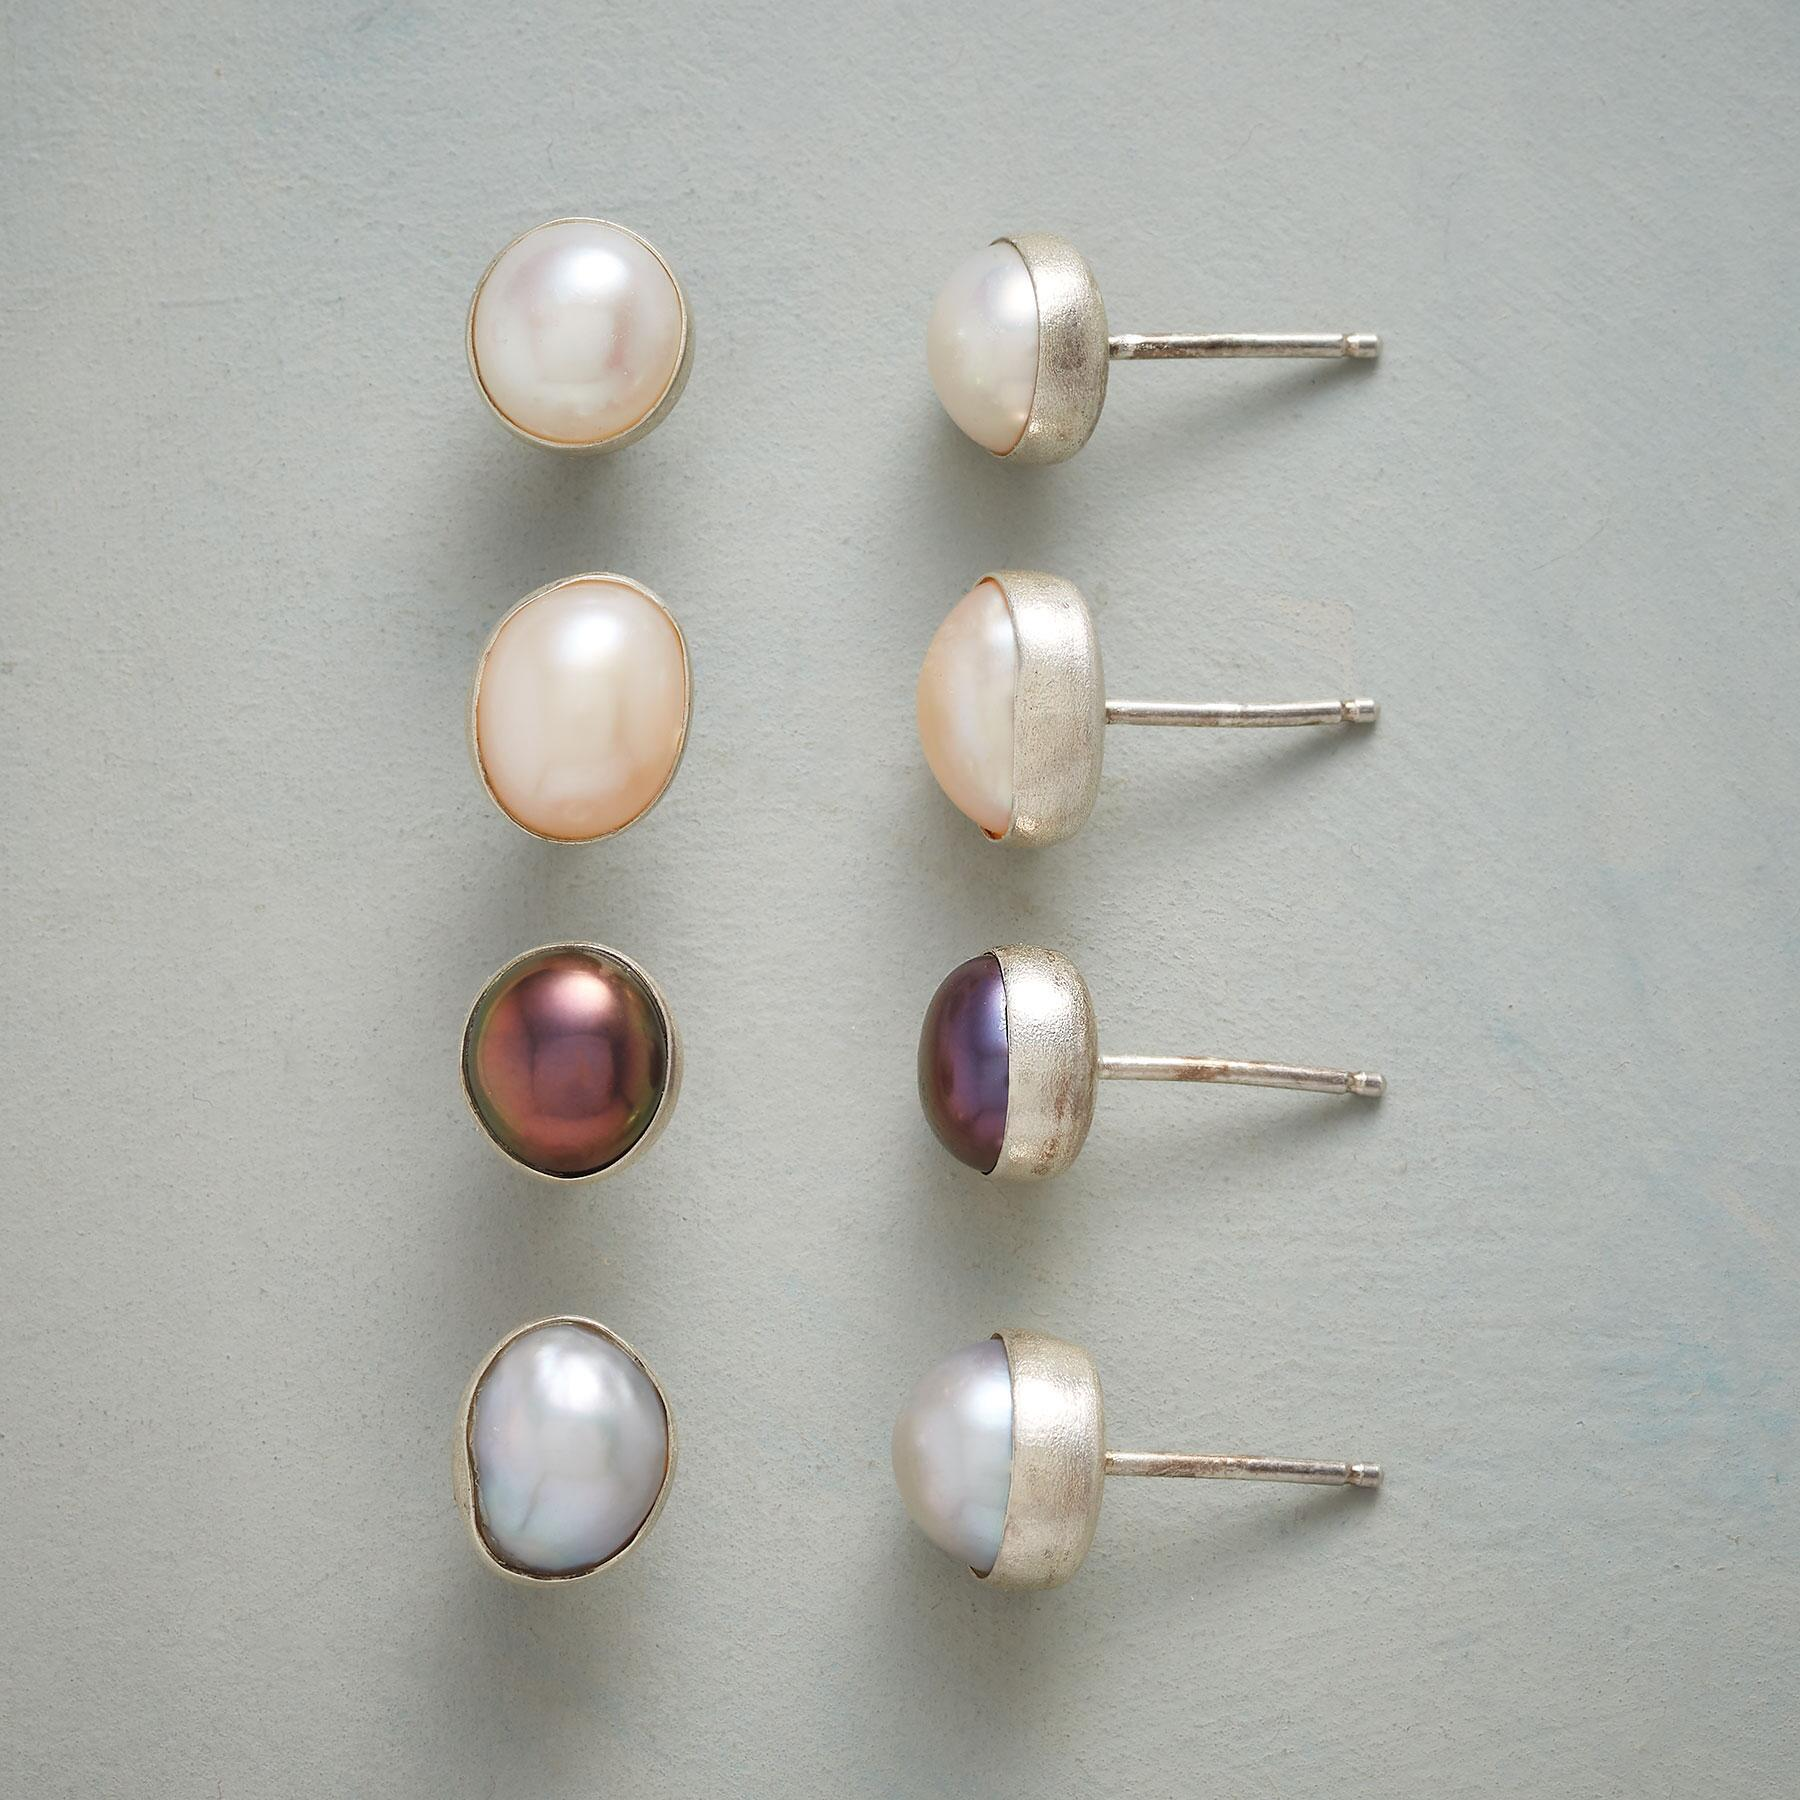 SHADES OF PEARL EARRINGS, SET OF 4: View 1